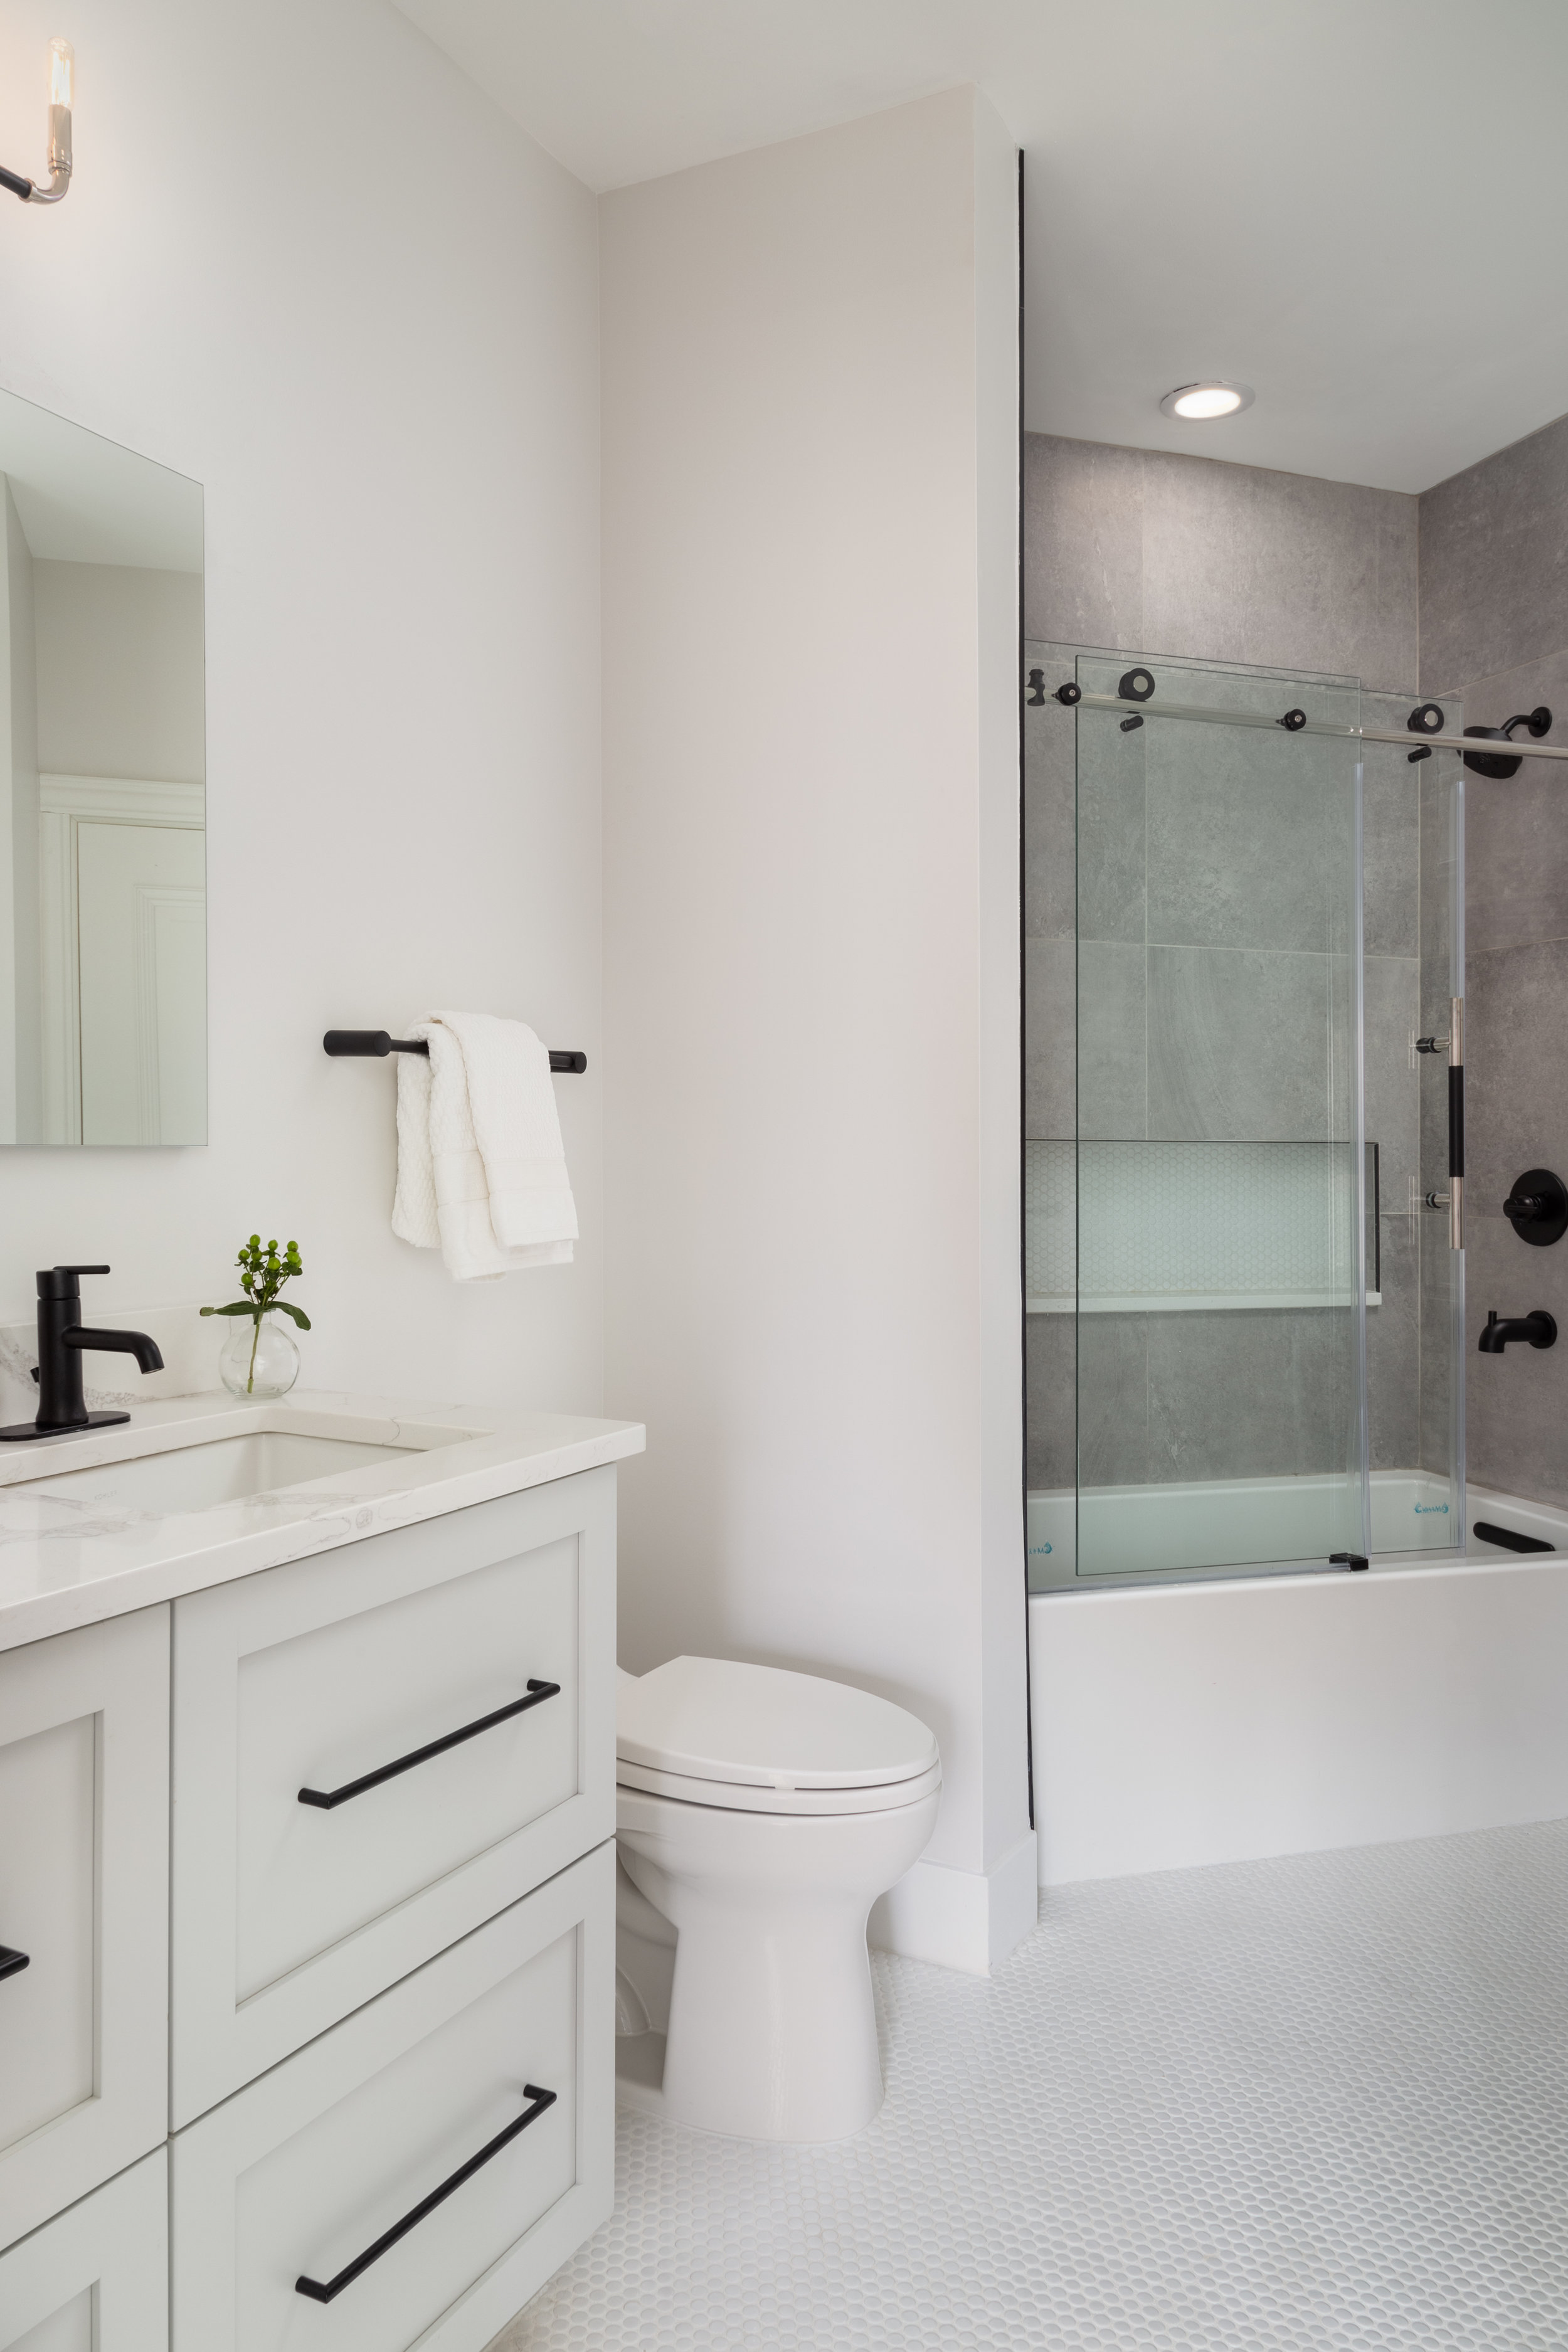 Clean, white penny tiles on the floor create a subtle texture and keep the kids from slipping on a wet floor. In the shower, we tiled the walls with a concrete-looking porcelain tile to add some natural texture and depth.